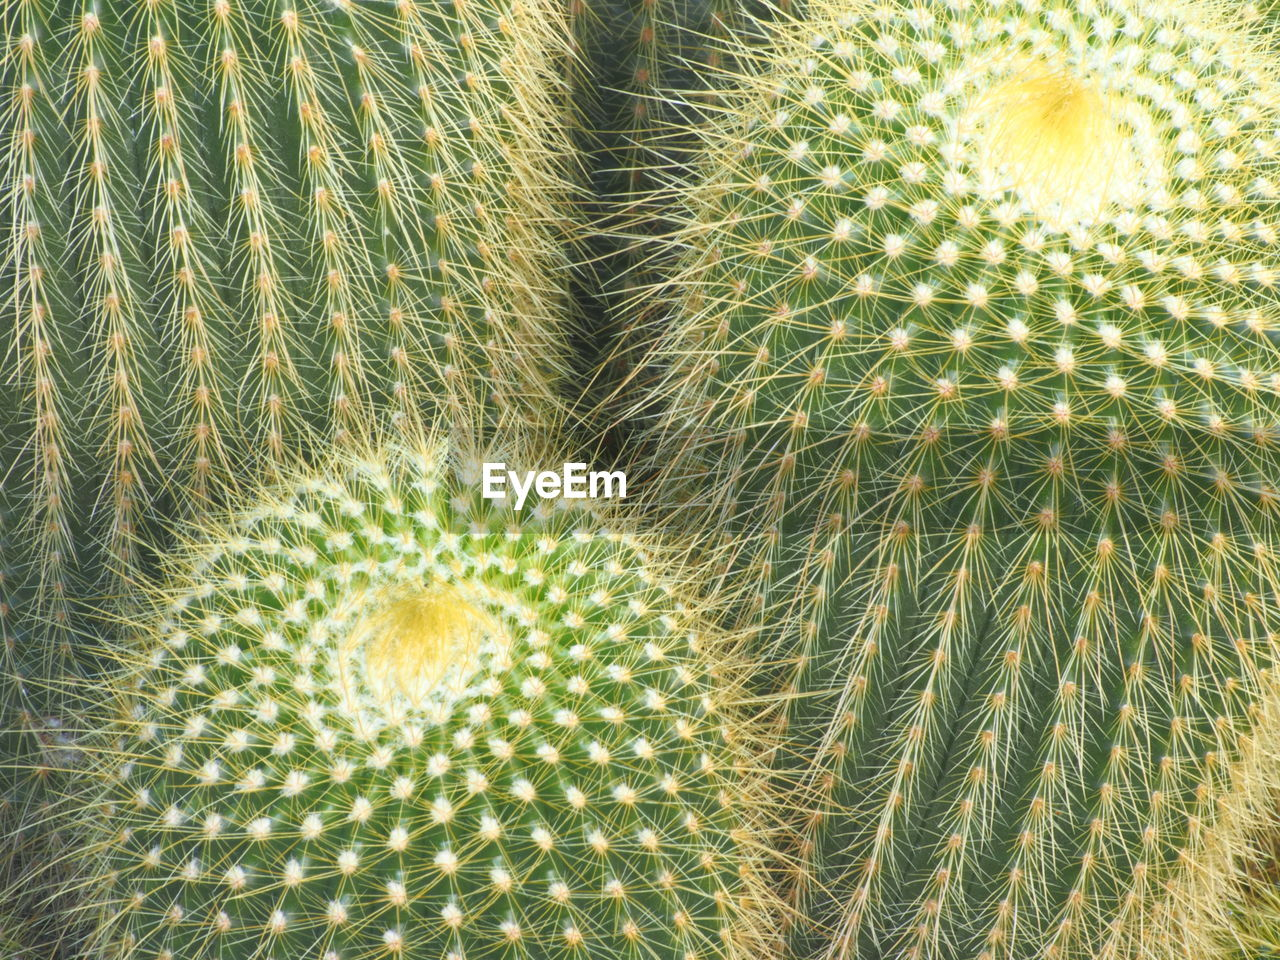 cactus, succulent plant, close-up, no people, barrel cactus, green color, thorn, plant, growth, beauty in nature, natural pattern, full frame, day, nature, sharp, spiked, backgrounds, pattern, textured, land, ecosystem